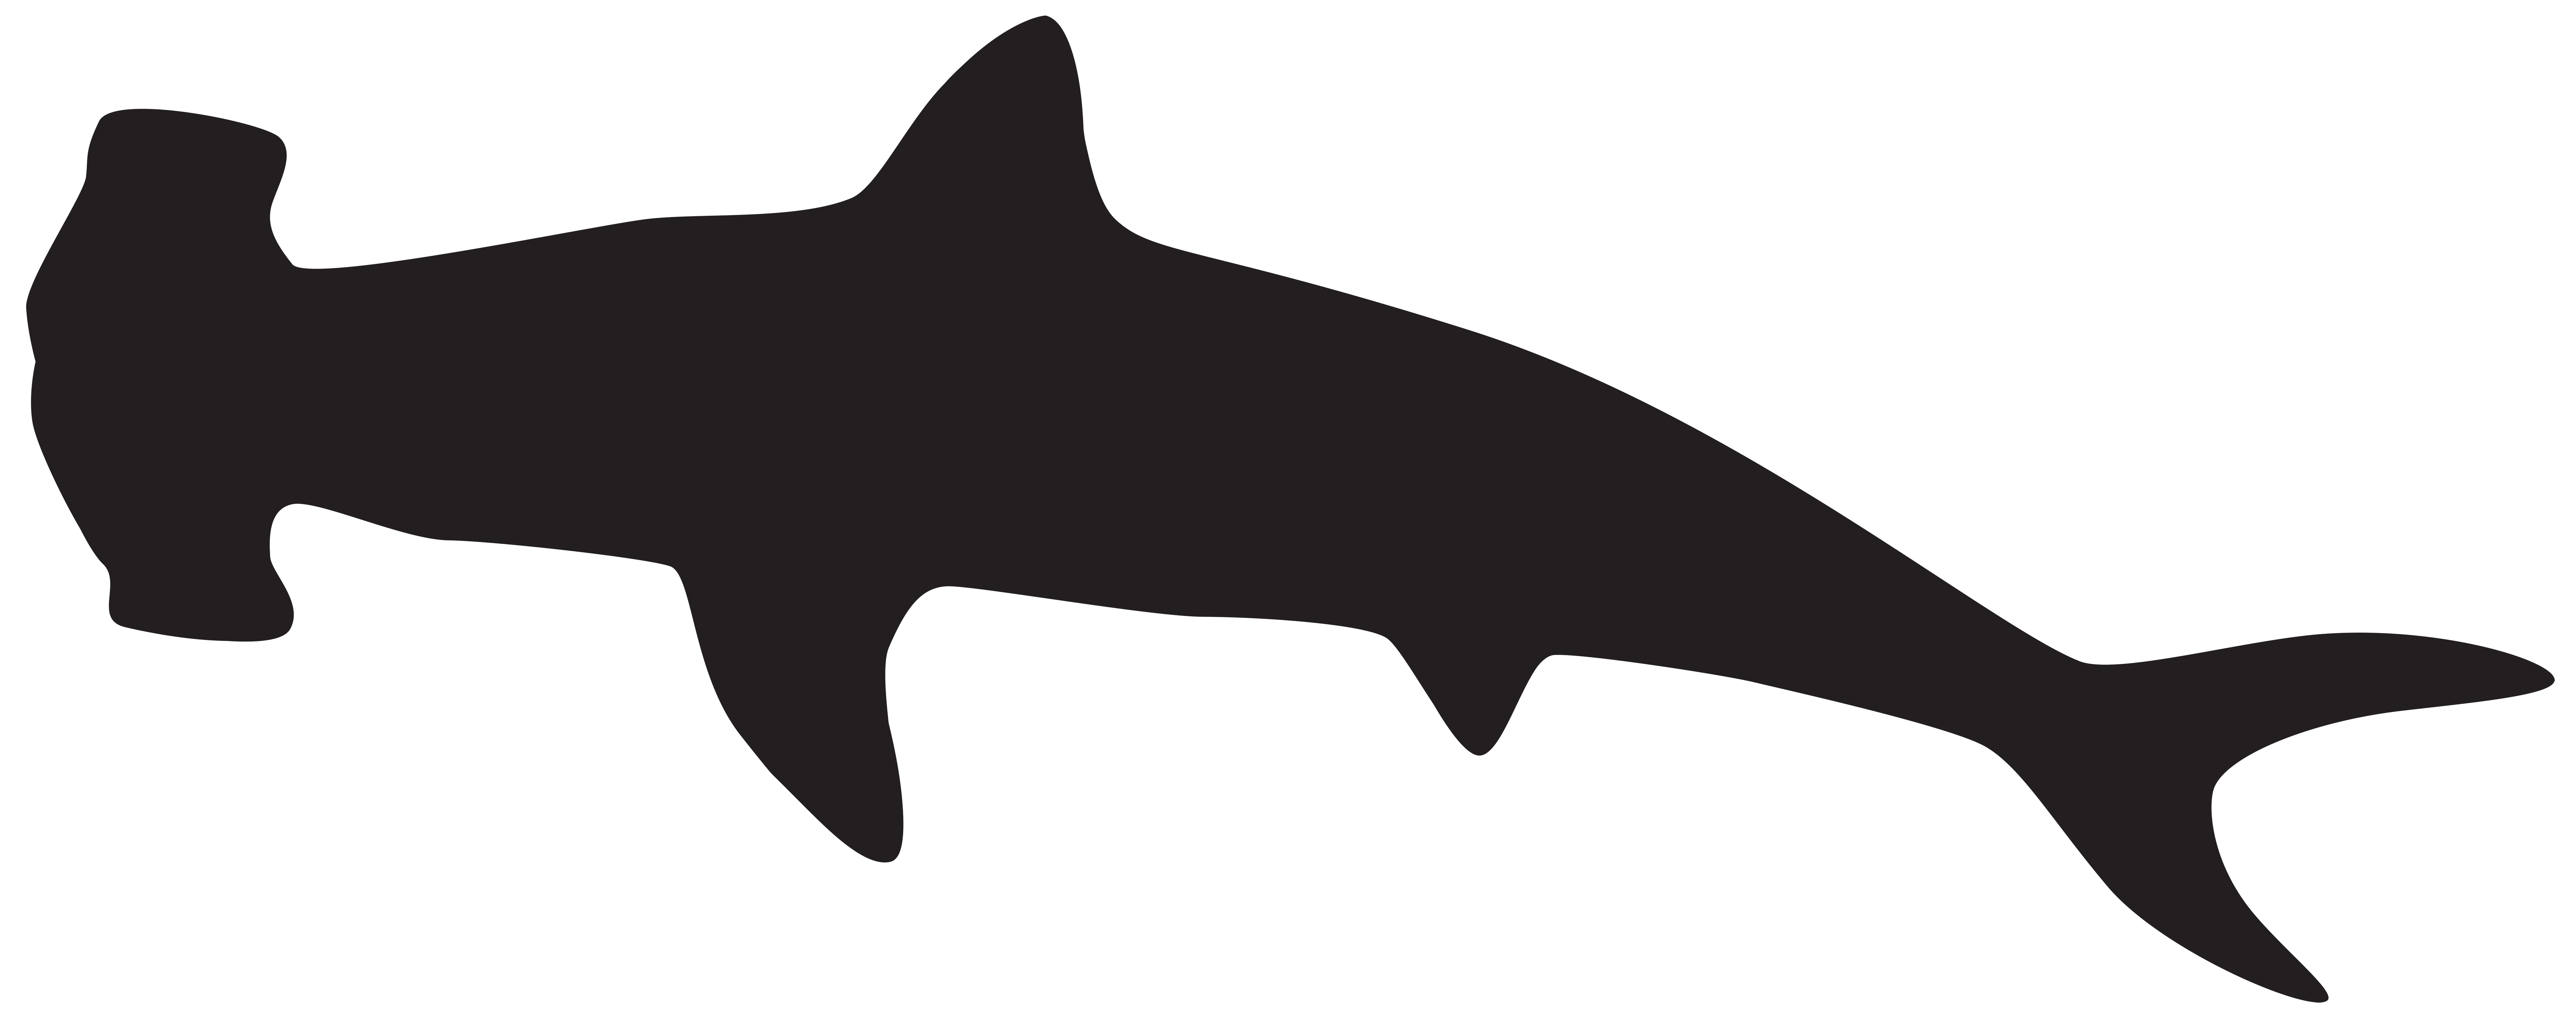 Shark clipart transparent background. Hammerhead silhouette png clip